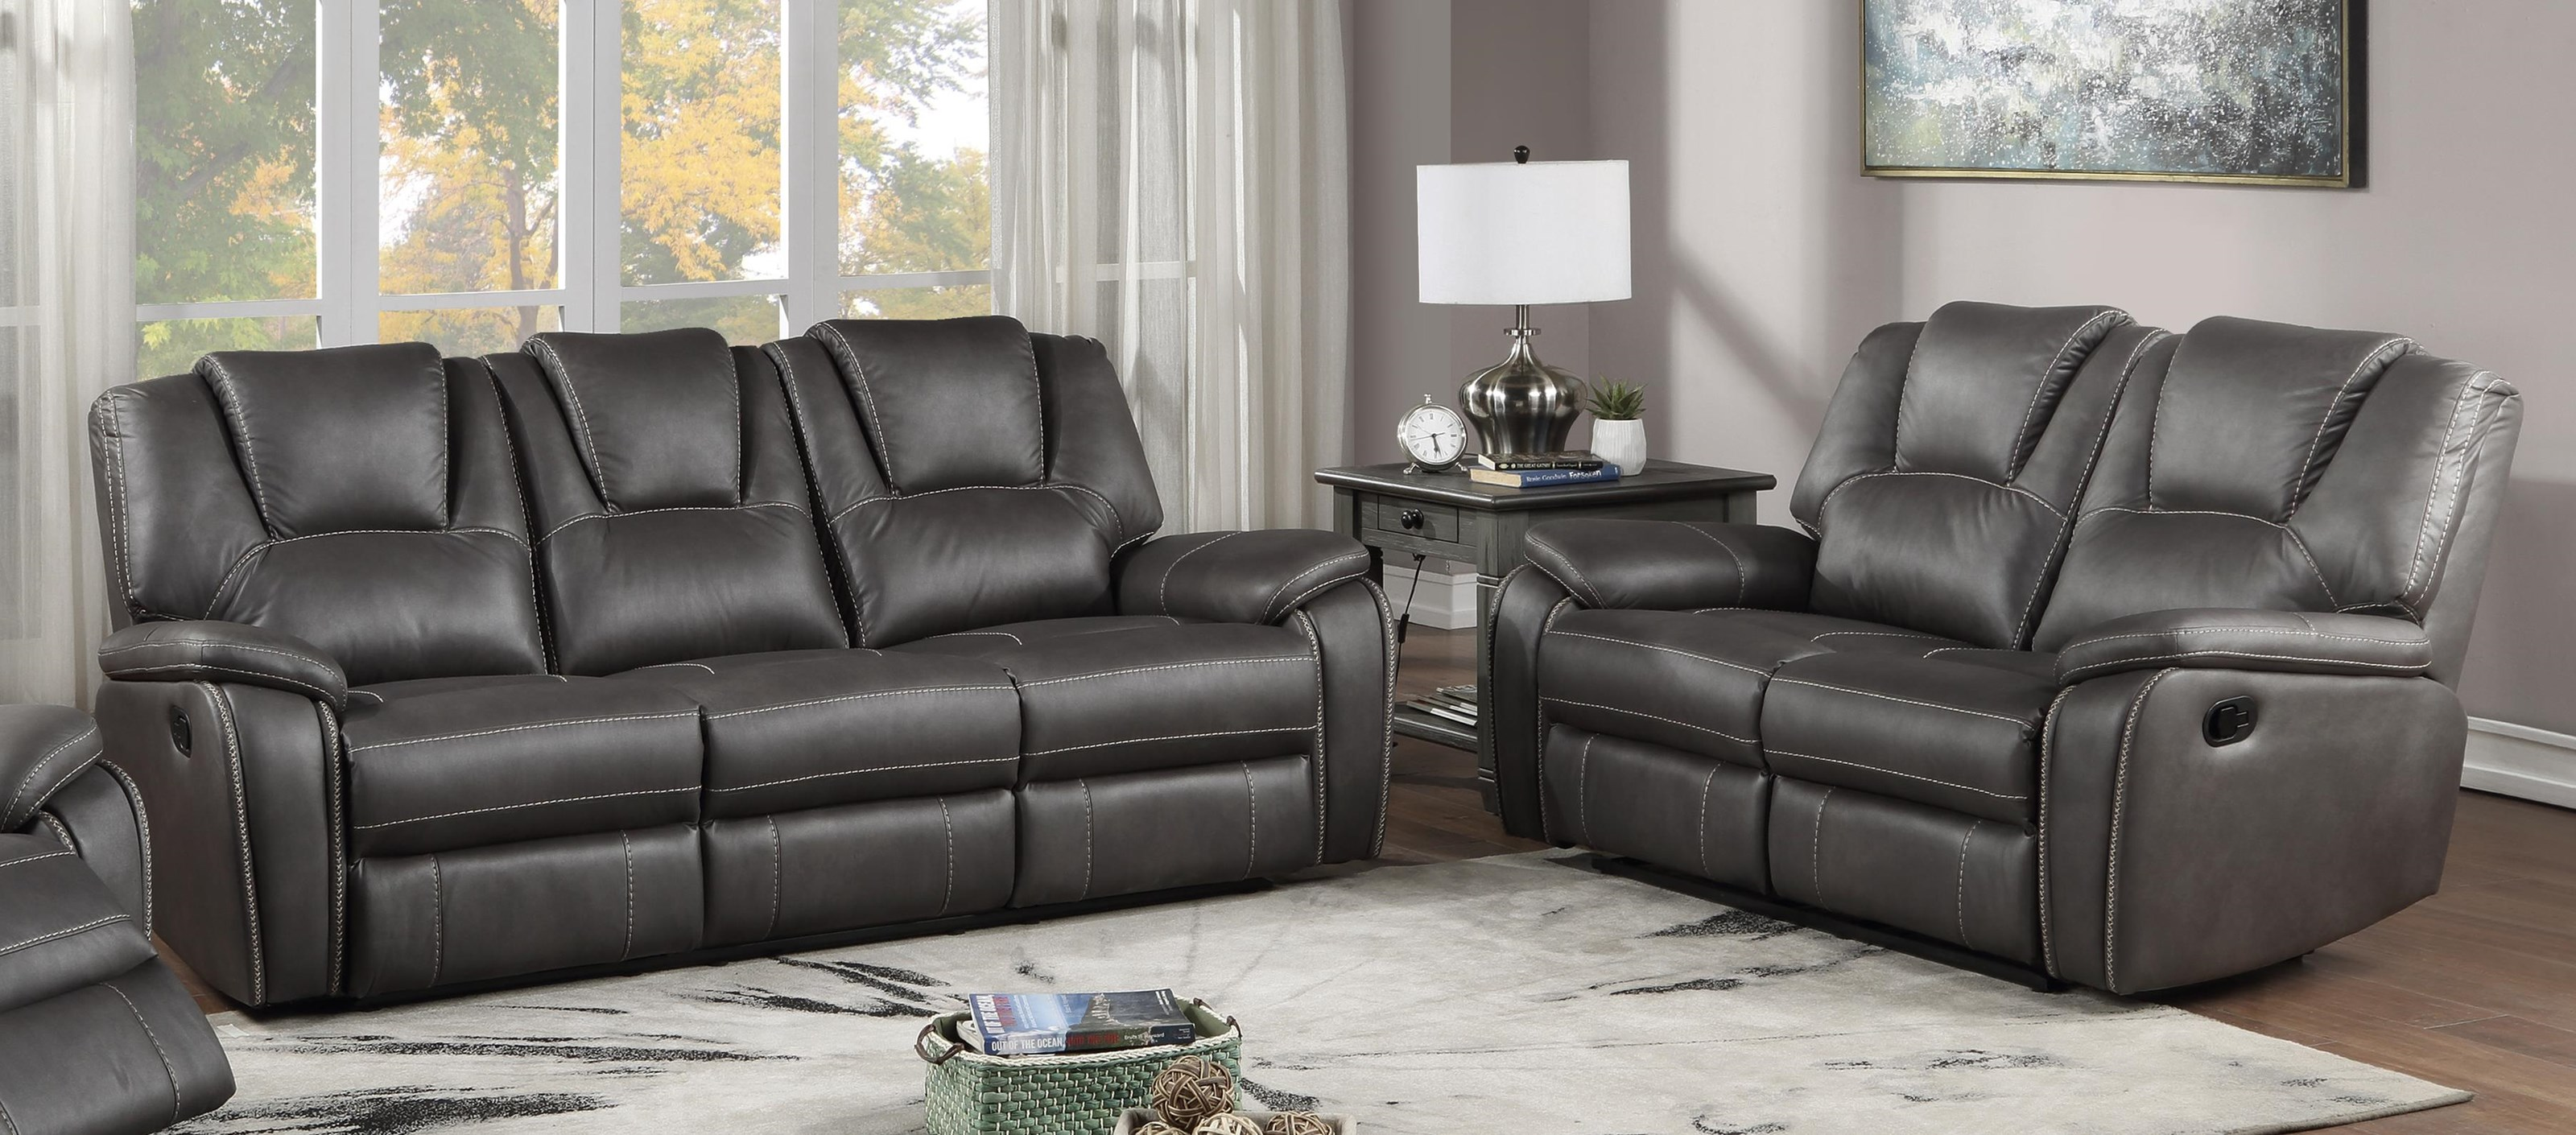 Katrine Reclining Sofa and Loveseat Set by Steve Silver at Sam Levitz Outlet